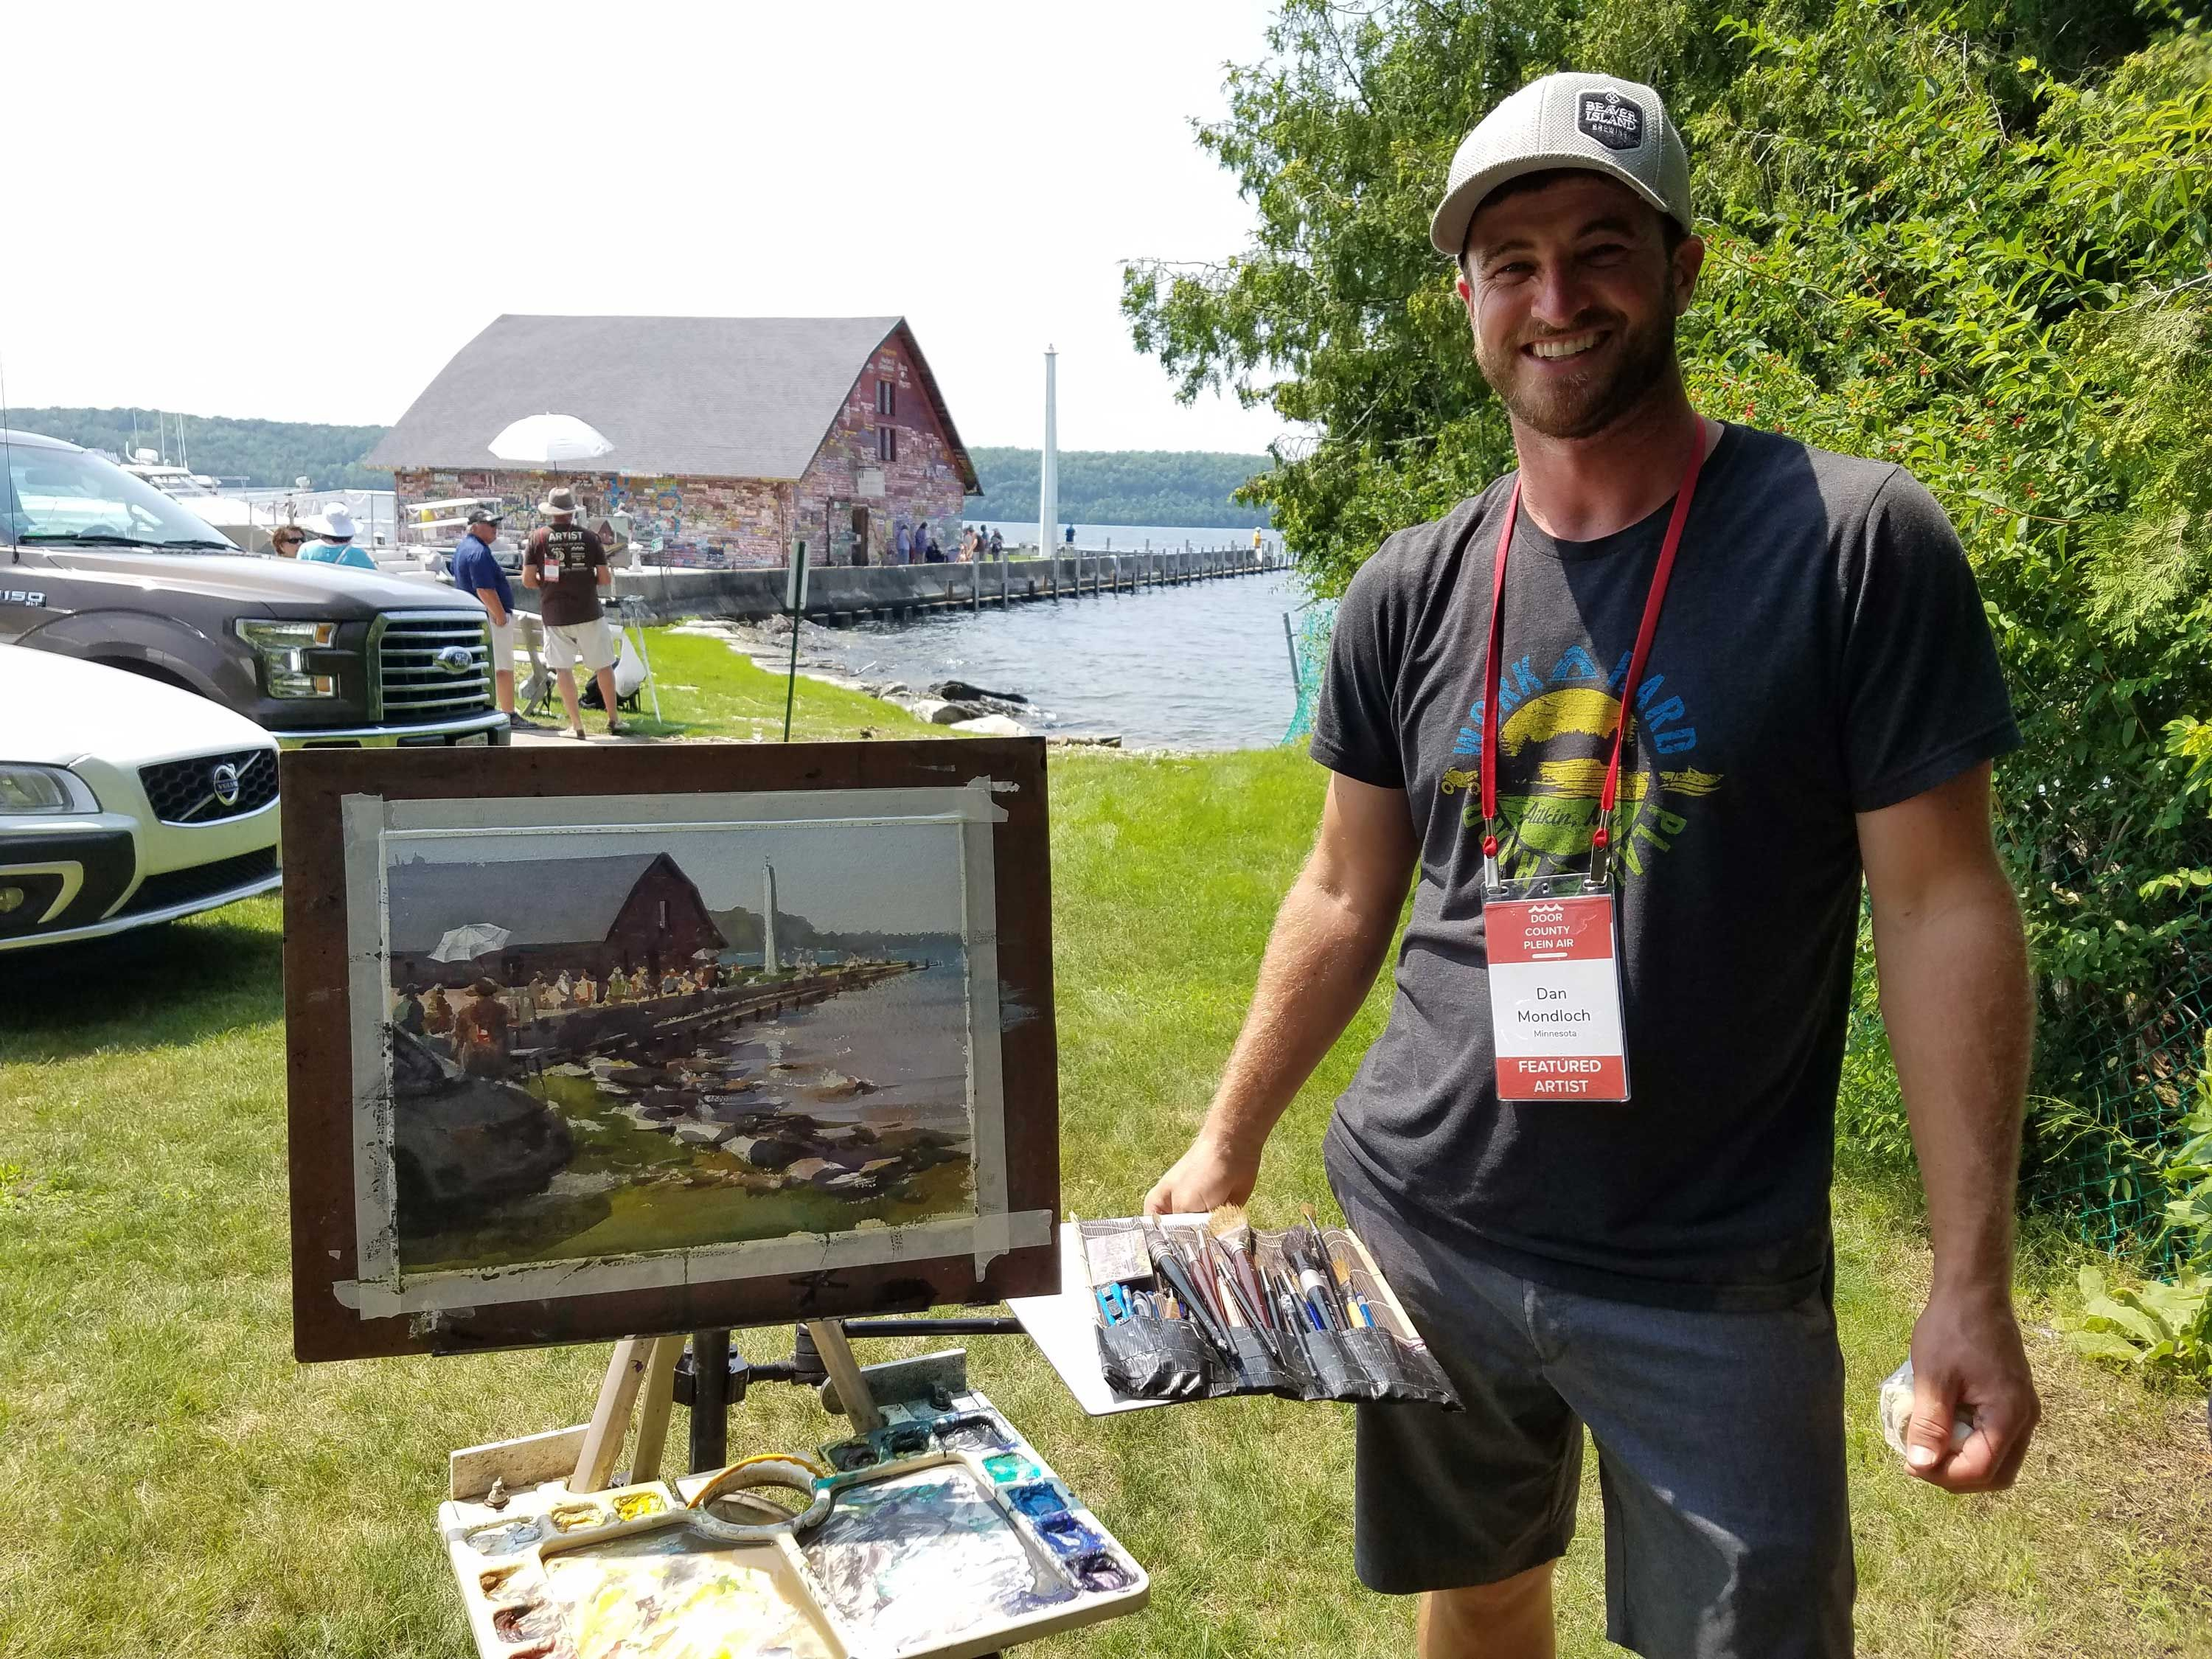 From Plein Air Magazine In the Meantime OutdoorPainter